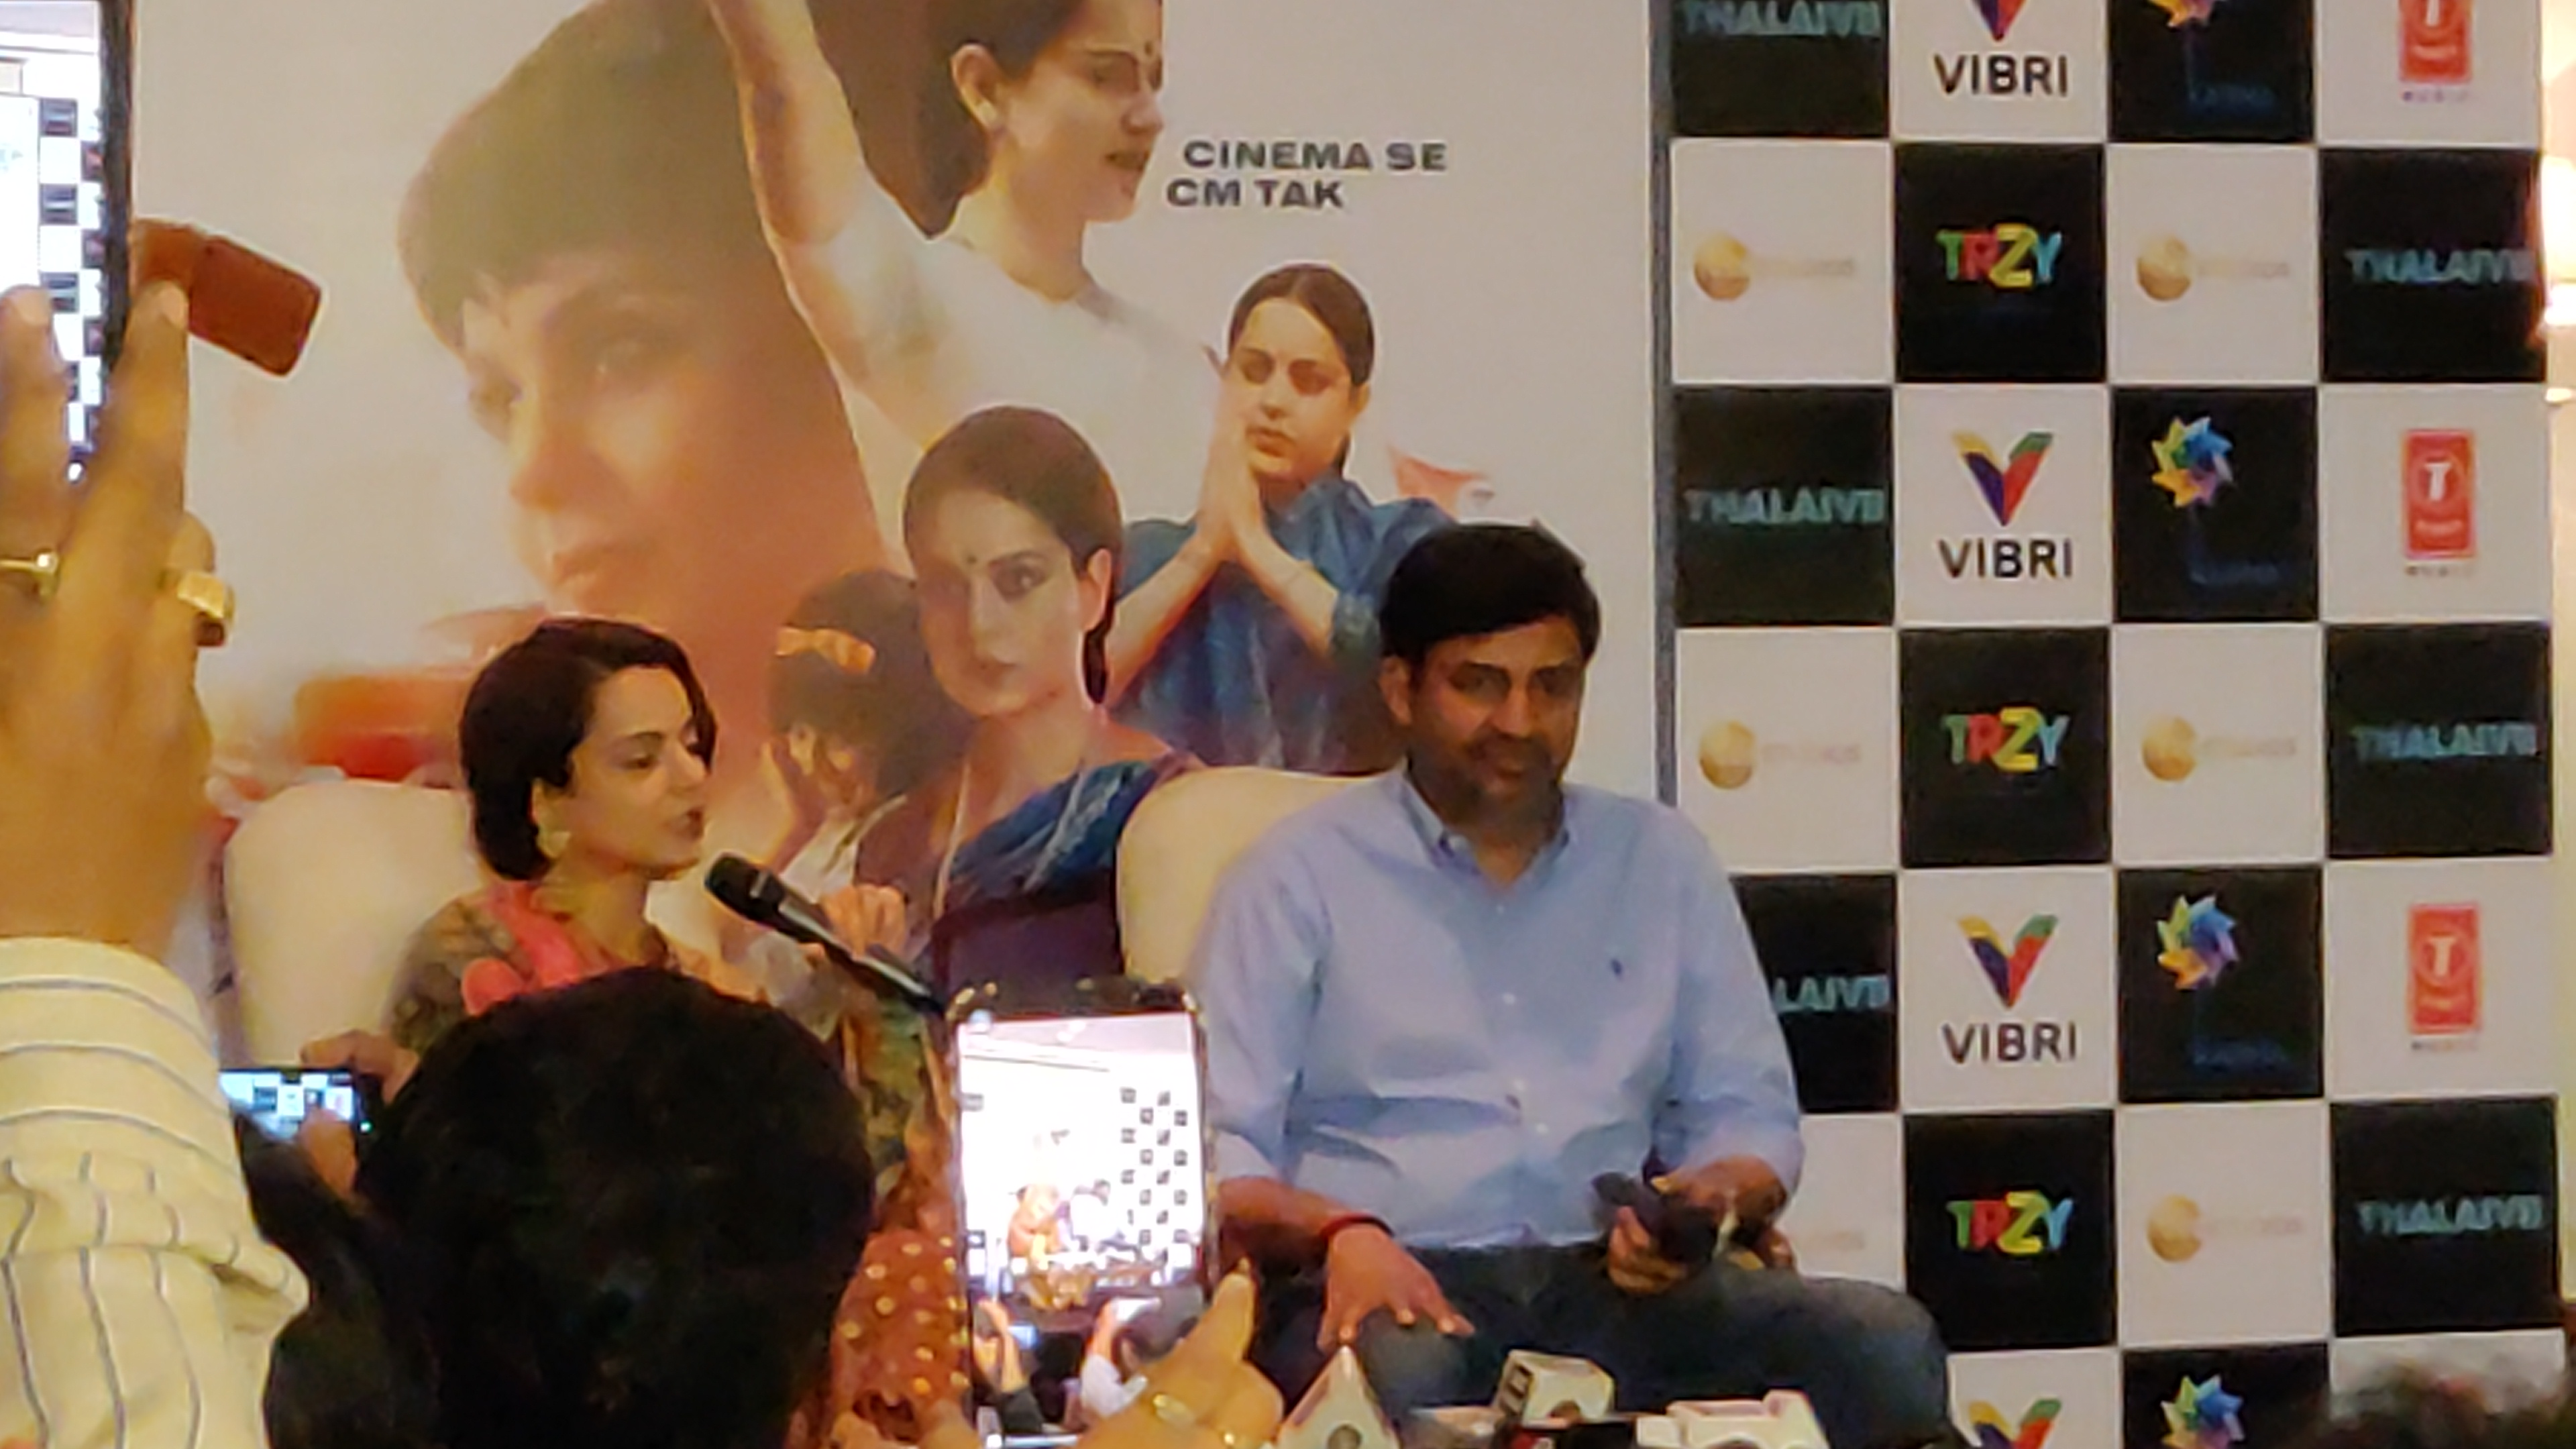 Kangana interacted with the media in a packed venue at The Imperial in New Delhi. Photo: Connected to India